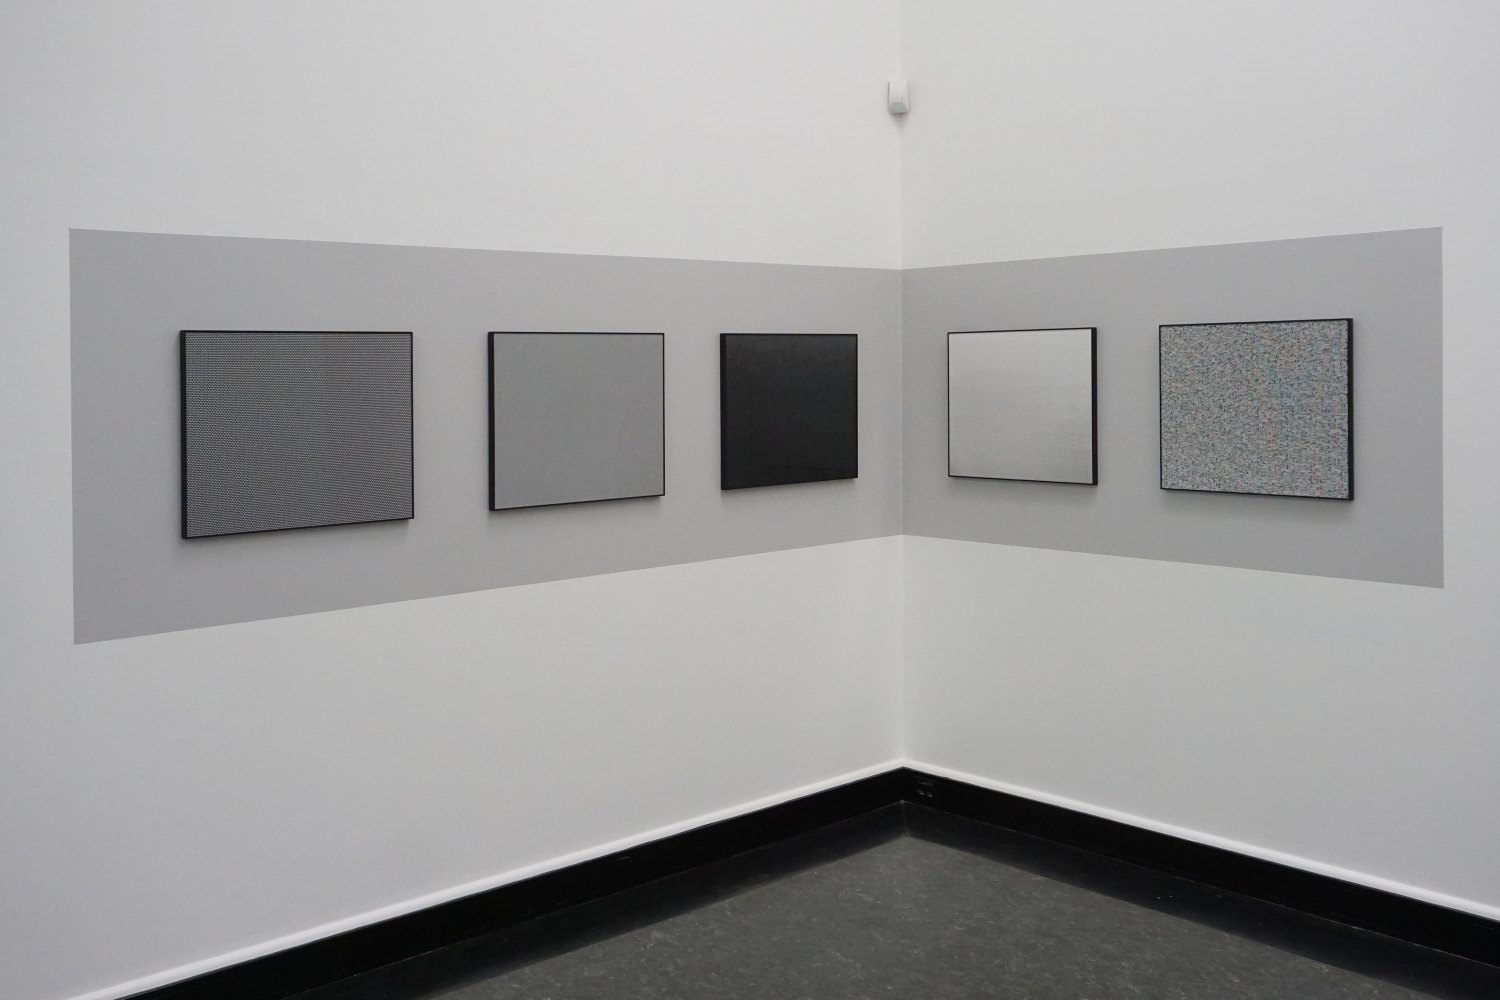 Sean Snyder CCD Digital Image Sensor (5 Layers), 2018 5 b/w archival pigment prints on matte paper, black aluminum frames, 52 x 64 cm, installed on wall painted RAL 7047, 100 x 476 cm